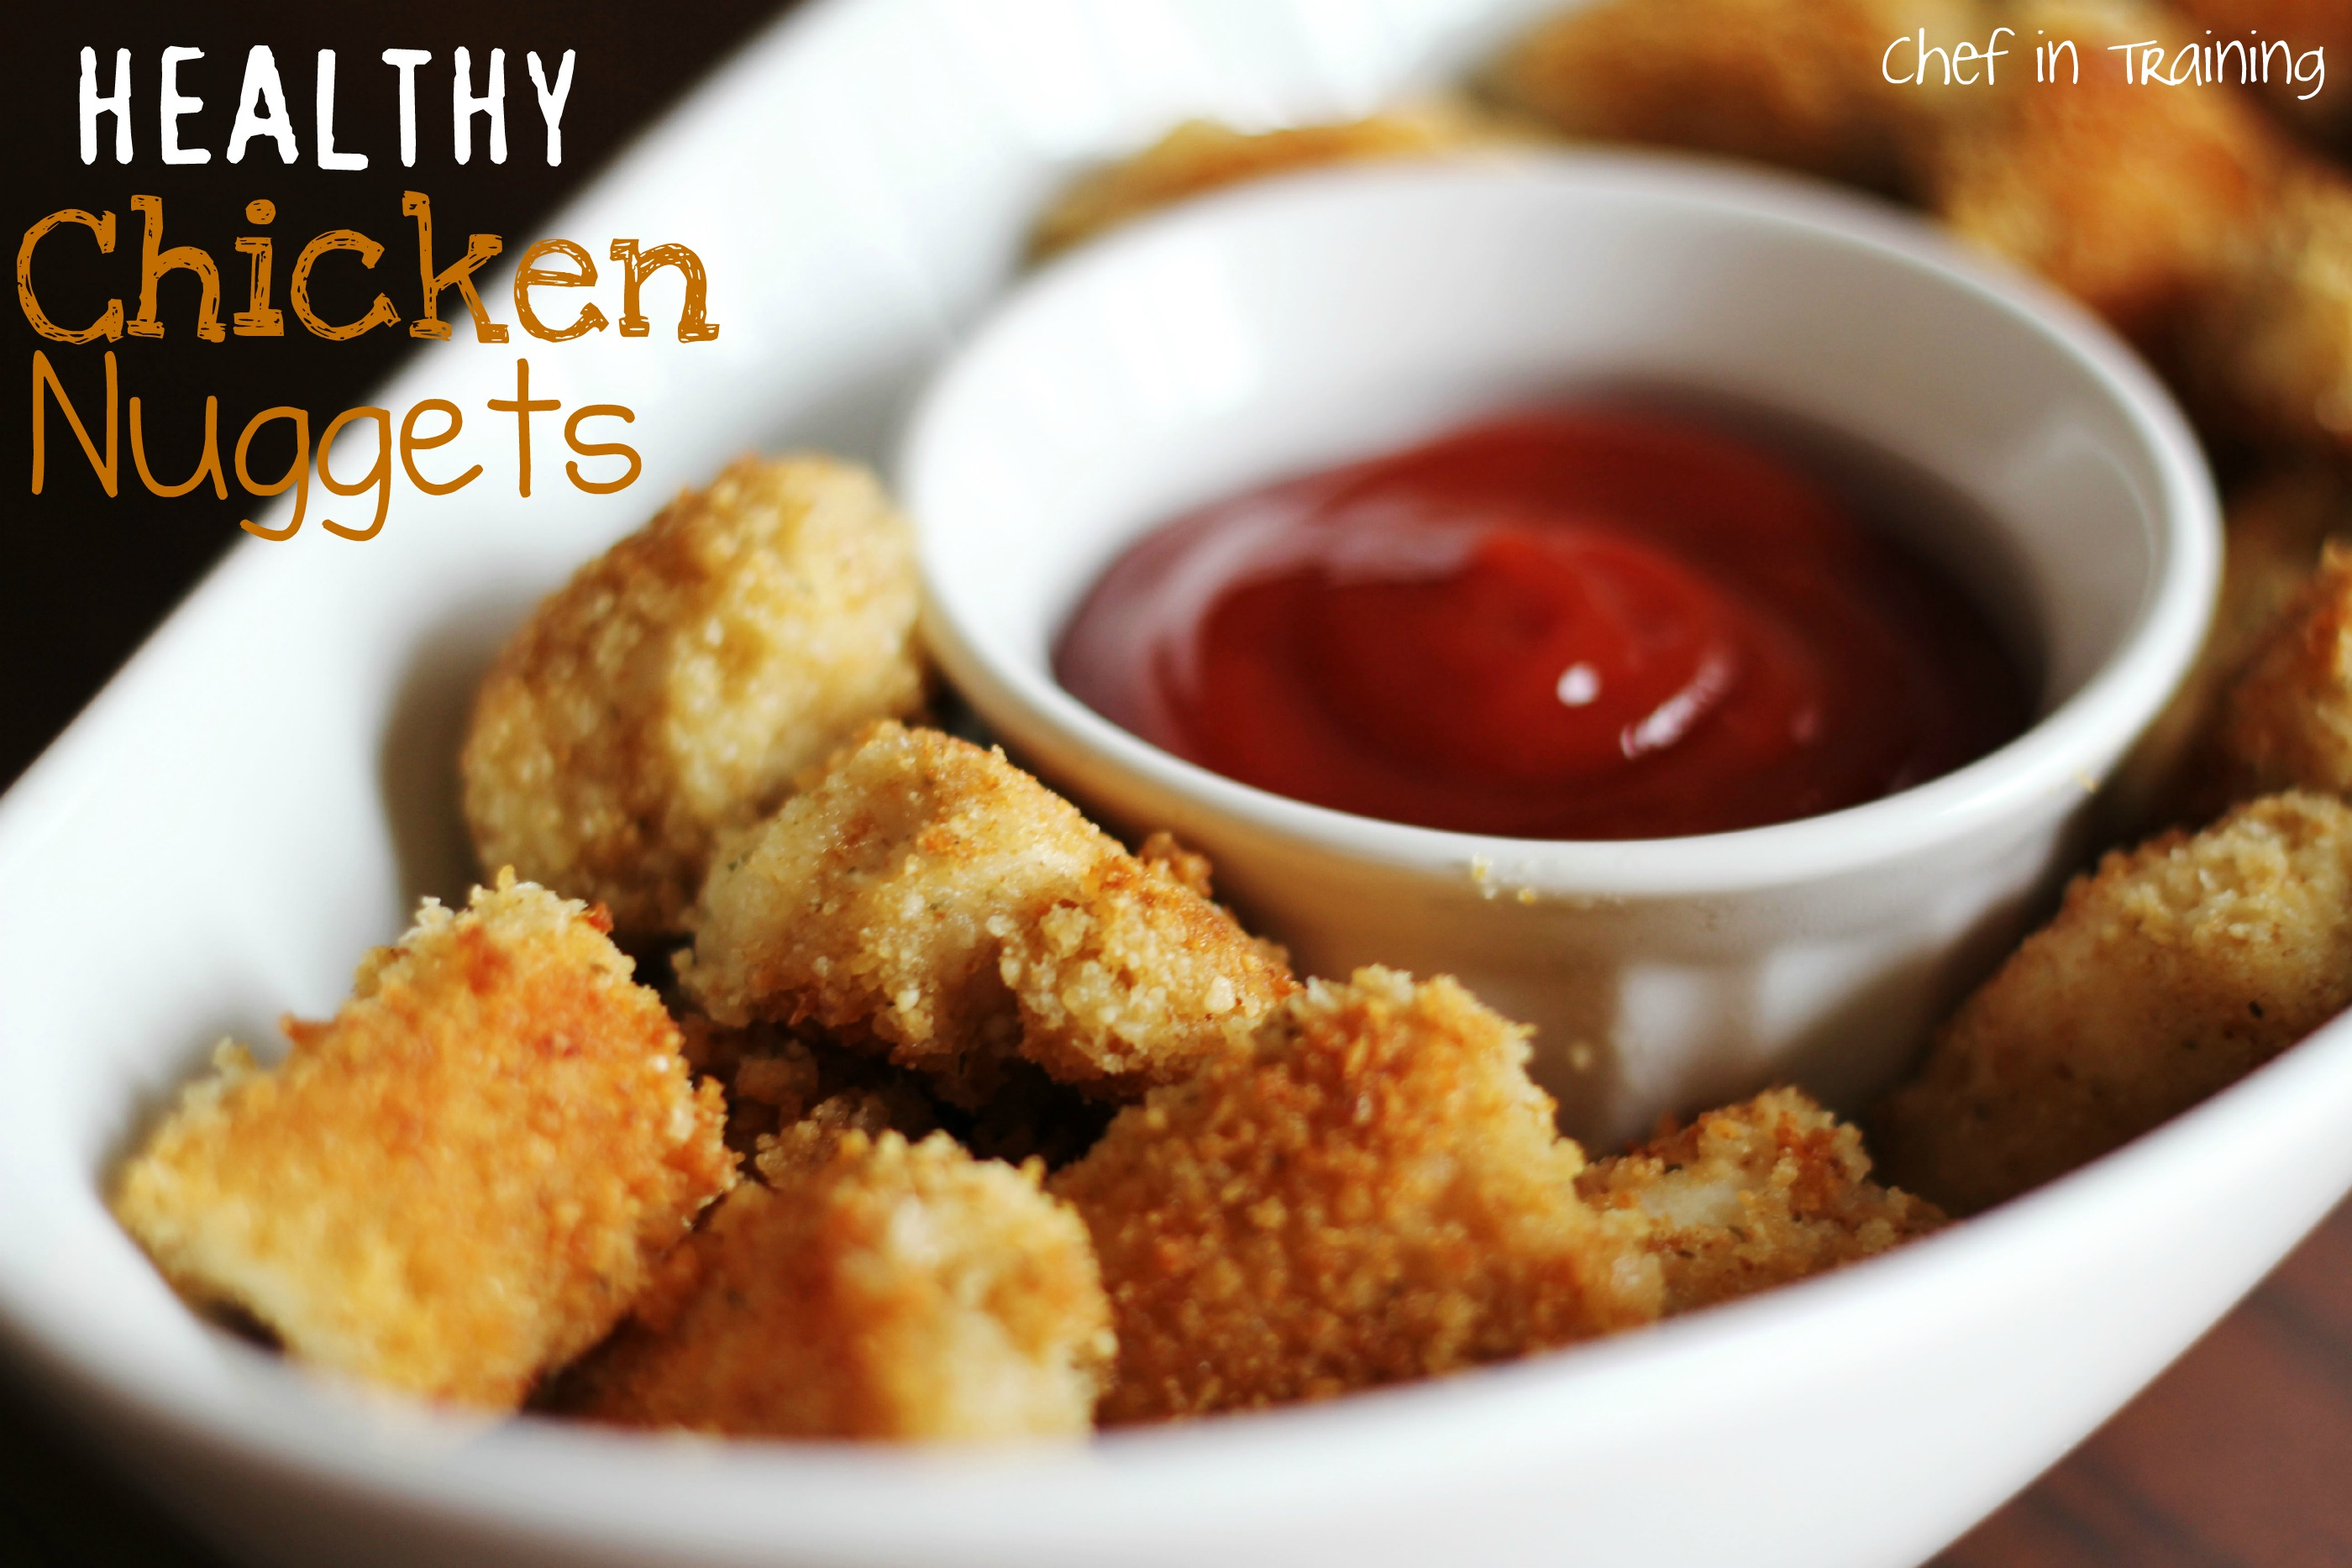 Tips to Getting Our Picky Eaters to Eat Healthy